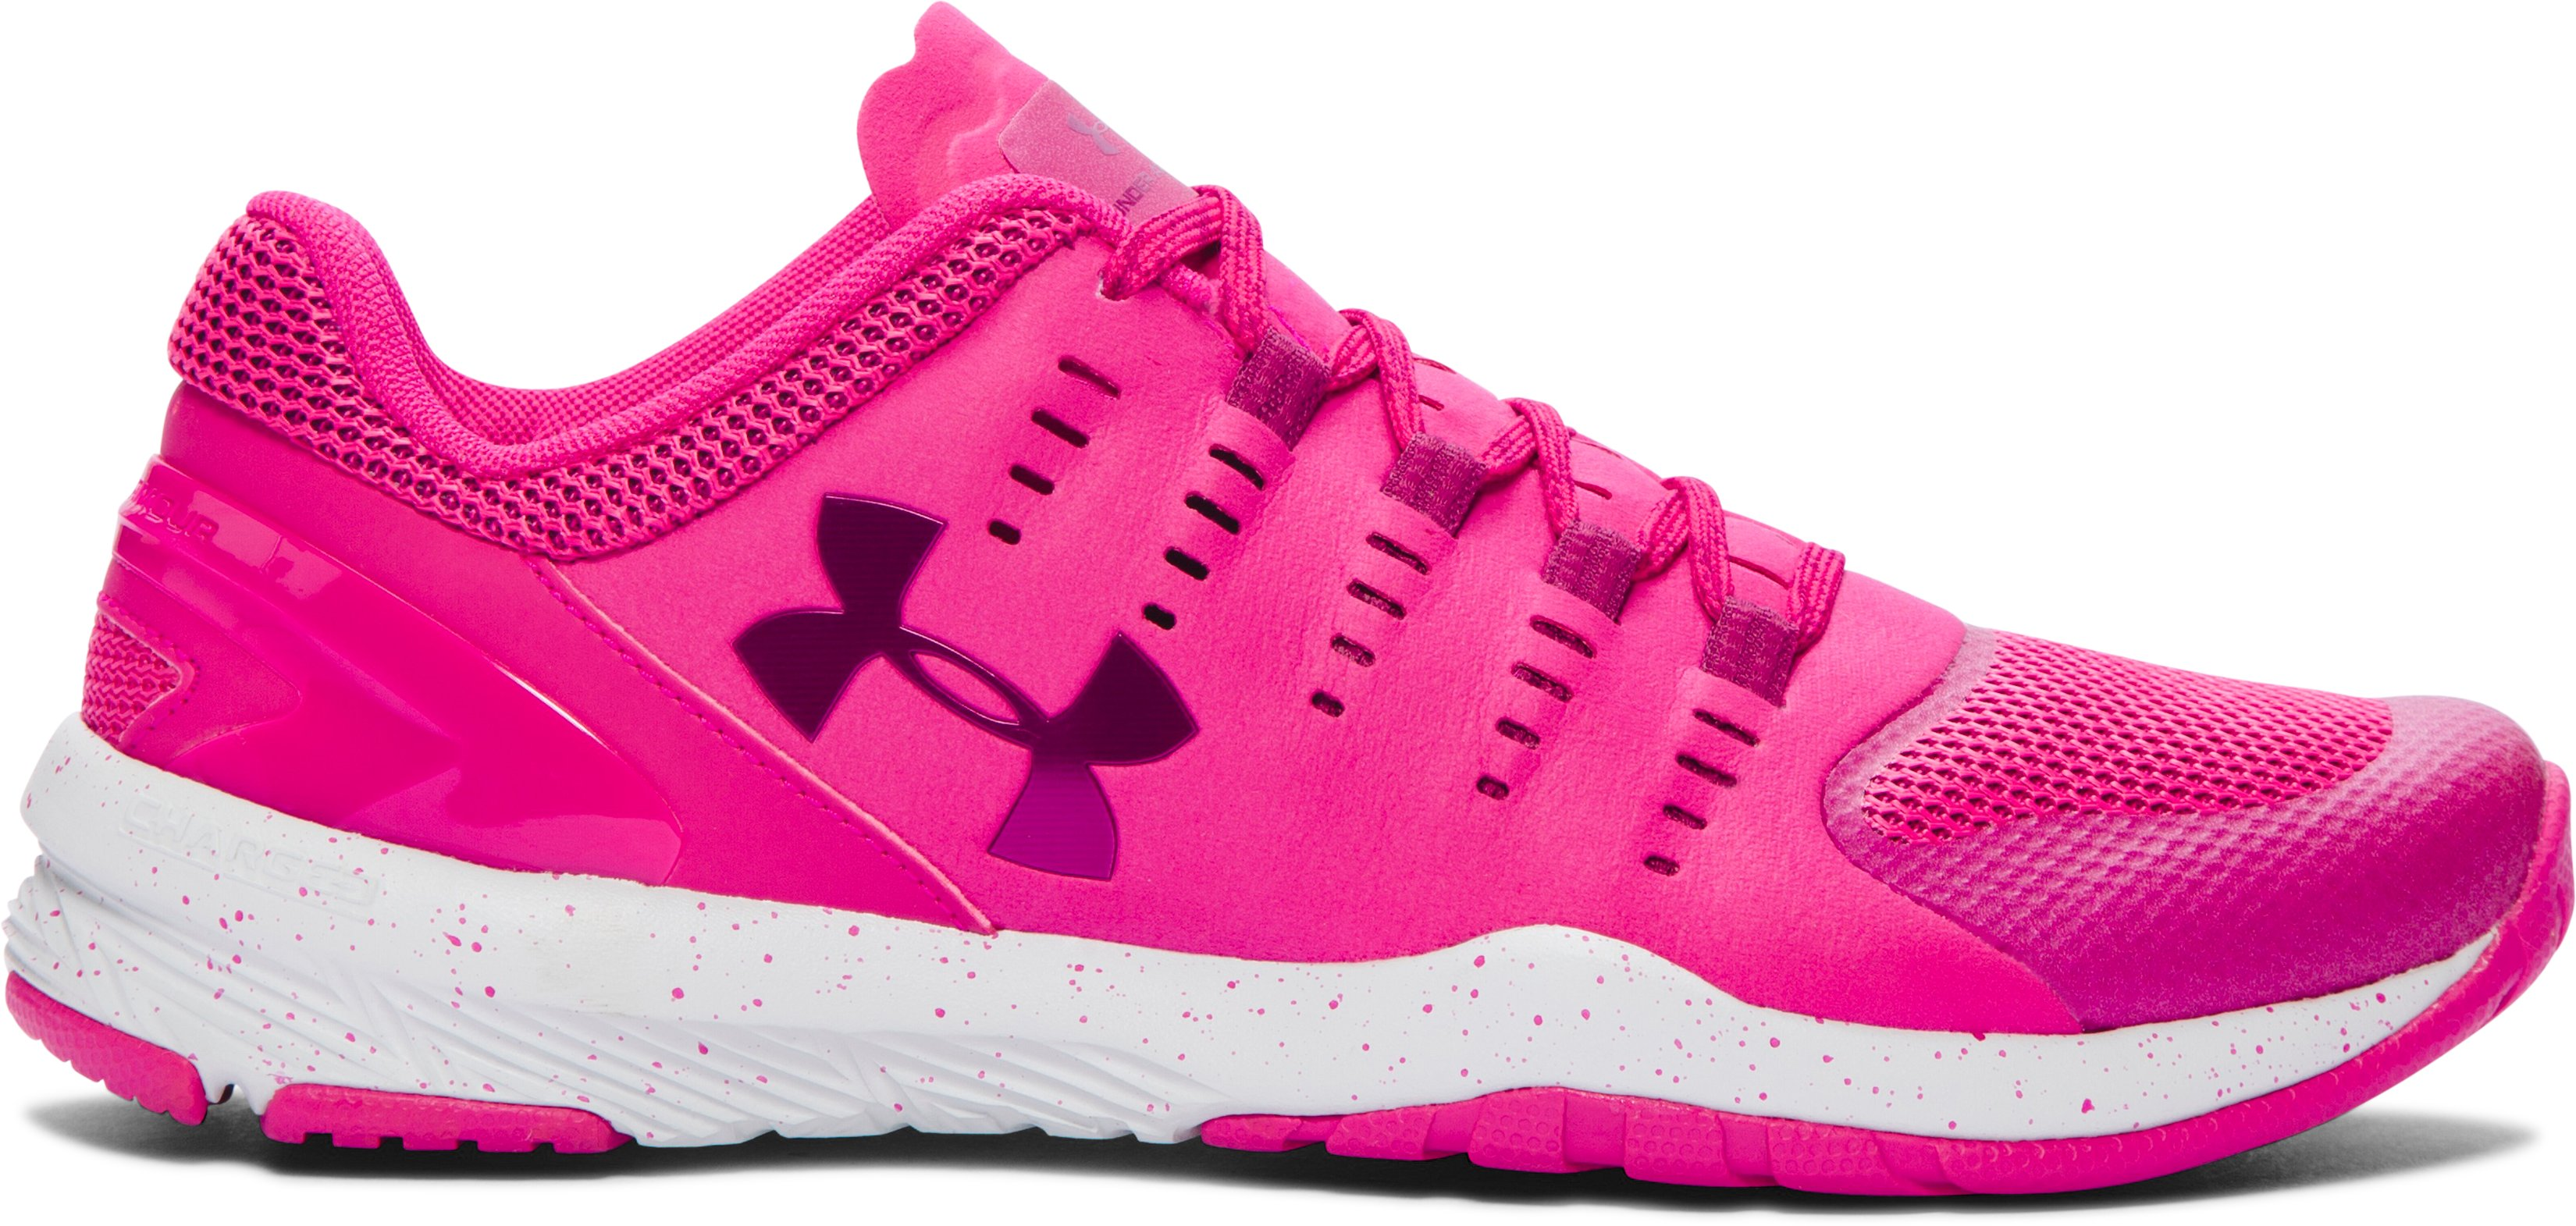 Women's UA Charged Stunner EXP Training Shoes, Tropic Pink